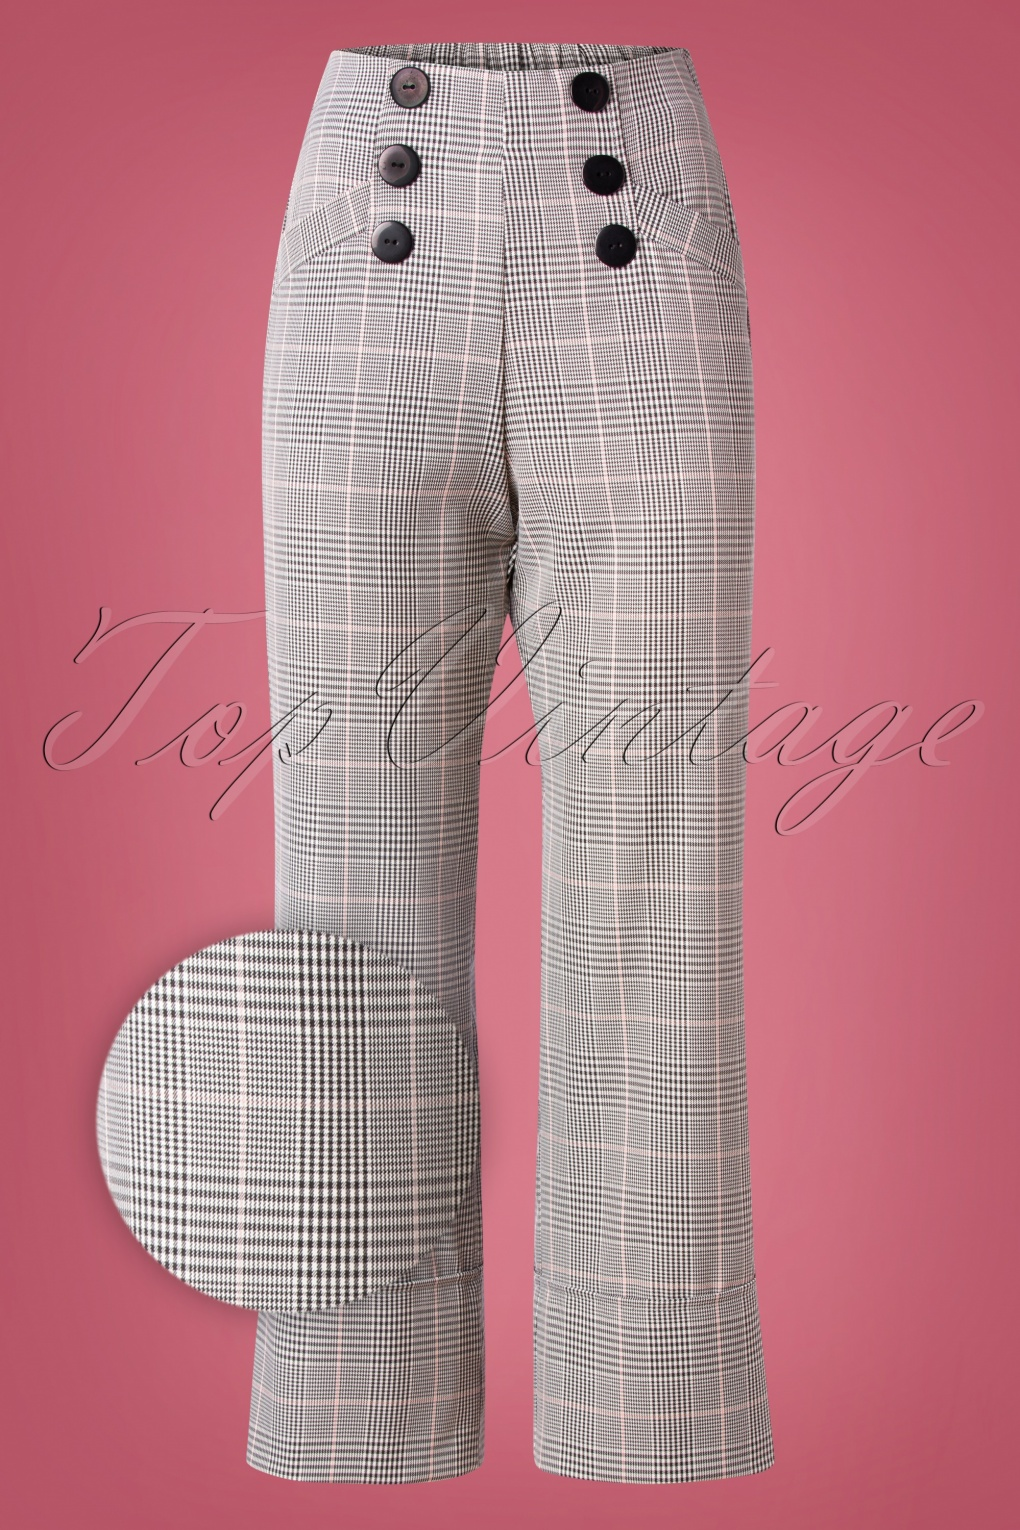 1960s Style Dresses, Clothing, Shoes UK 60s Marlene At Sea Trousers in Black and White £78.72 AT vintagedancer.com